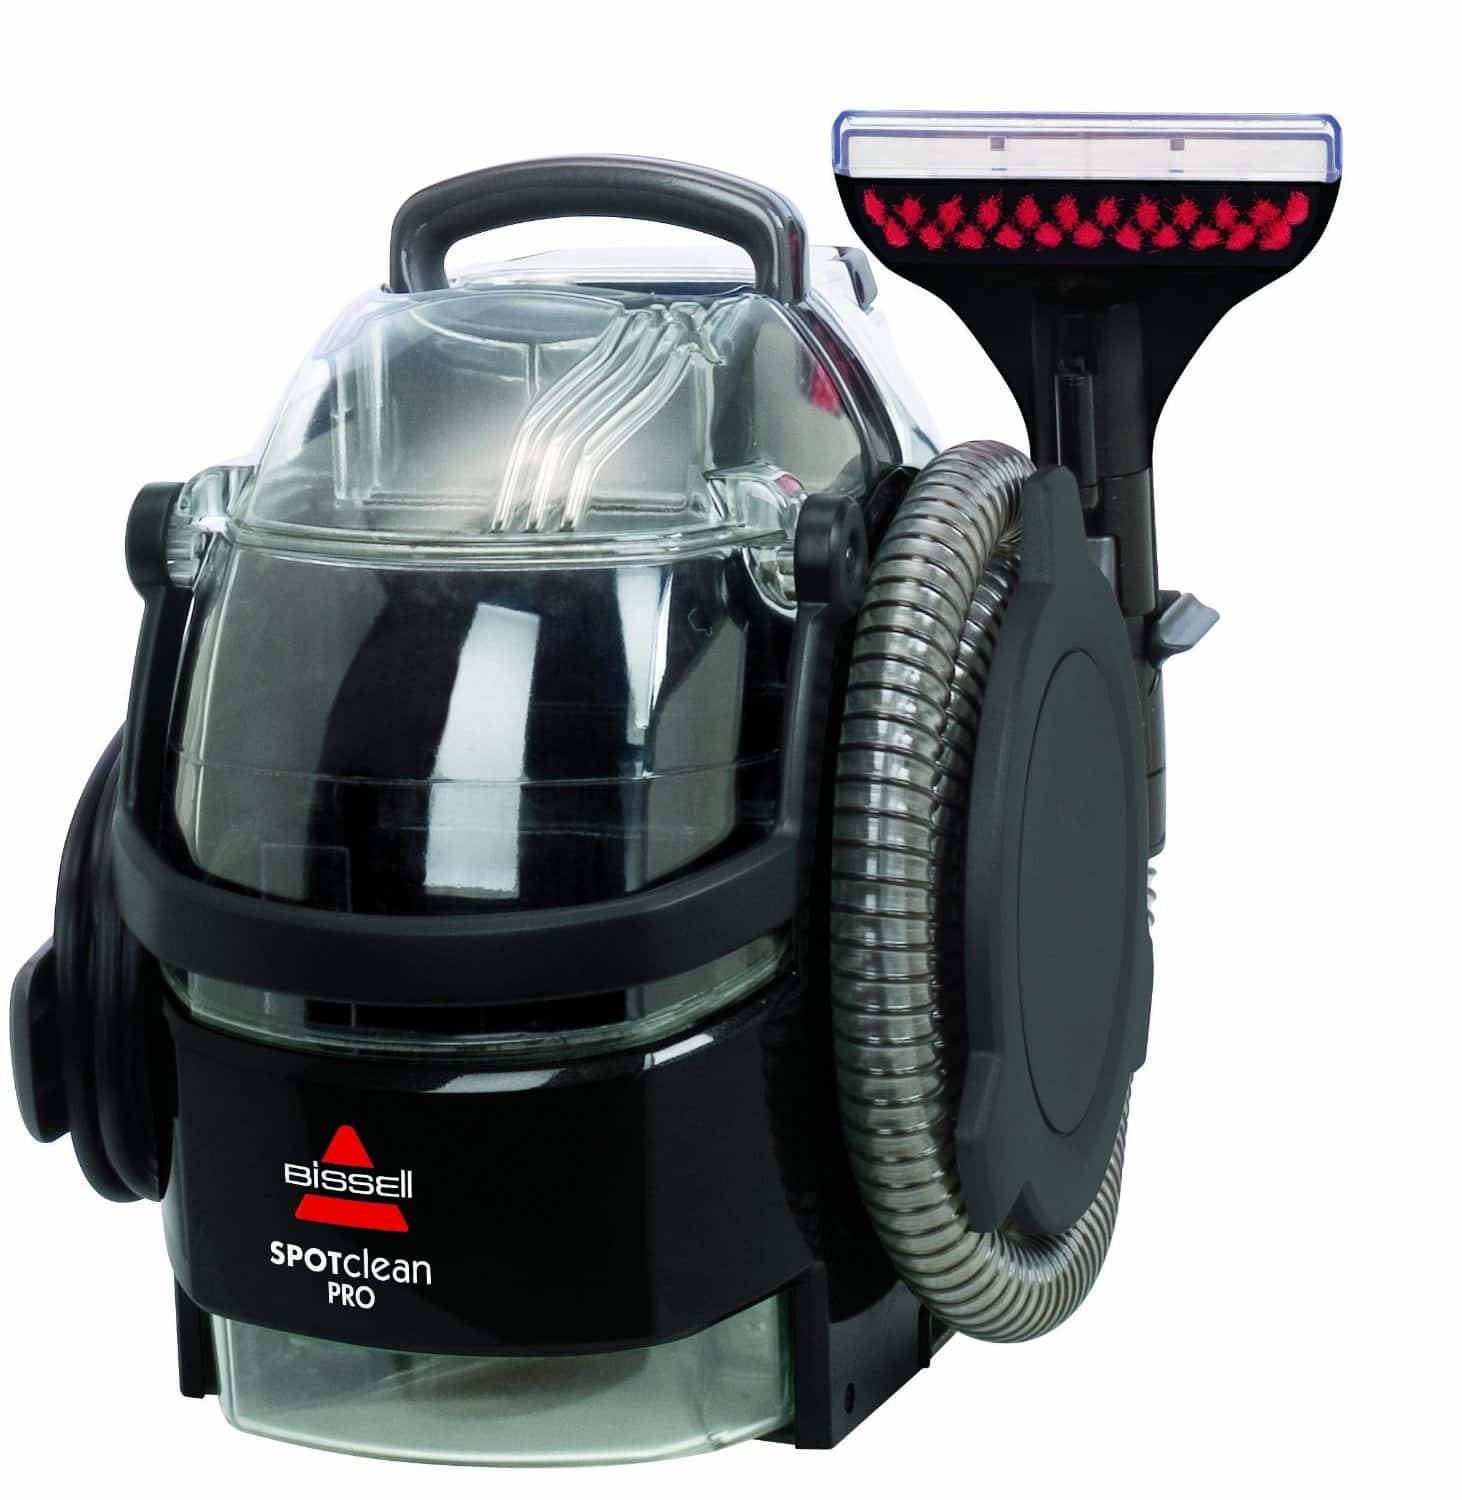 Prime Members Bissell SpotClean Pro Portable Carpet Cleaner